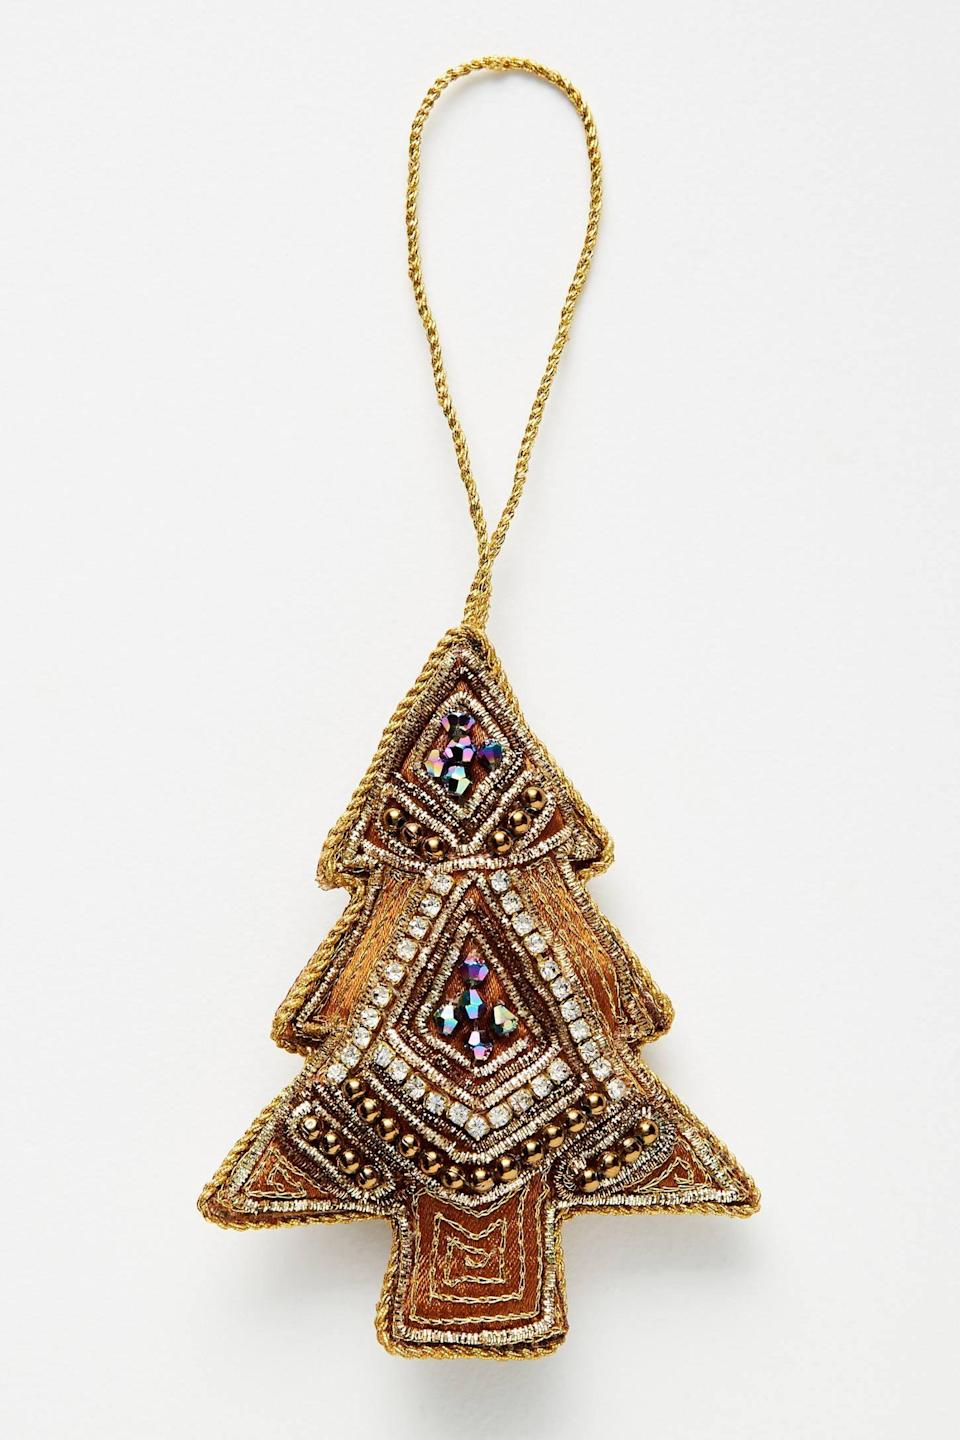 """<p>Who says a tree can't be an ornament, too? The <a href=""""https://www.popsugar.com/buy/Beaded-Golden-Tree-Ornament-490559?p_name=Beaded%20Golden%20Tree%20Ornament&retailer=anthropologie.com&pid=490559&price=12&evar1=casa%3Aus&evar9=46615300&evar98=https%3A%2F%2Fwww.popsugar.com%2Fhome%2Fphoto-gallery%2F46615300%2Fimage%2F46615430%2FBeaded-Golden-Tree-Ornament&list1=shopping%2Canthropologie%2Choliday%2Cchristmas%2Cchristmas%20decorations%2Choliday%20decor%2Chome%20shopping&prop13=mobile&pdata=1"""" rel=""""nofollow noopener"""" class=""""link rapid-noclick-resp"""" target=""""_blank"""" data-ylk=""""slk:Beaded Golden Tree Ornament"""">Beaded Golden Tree Ornament</a> ($12) will sparkle under holiday lights. </p>"""